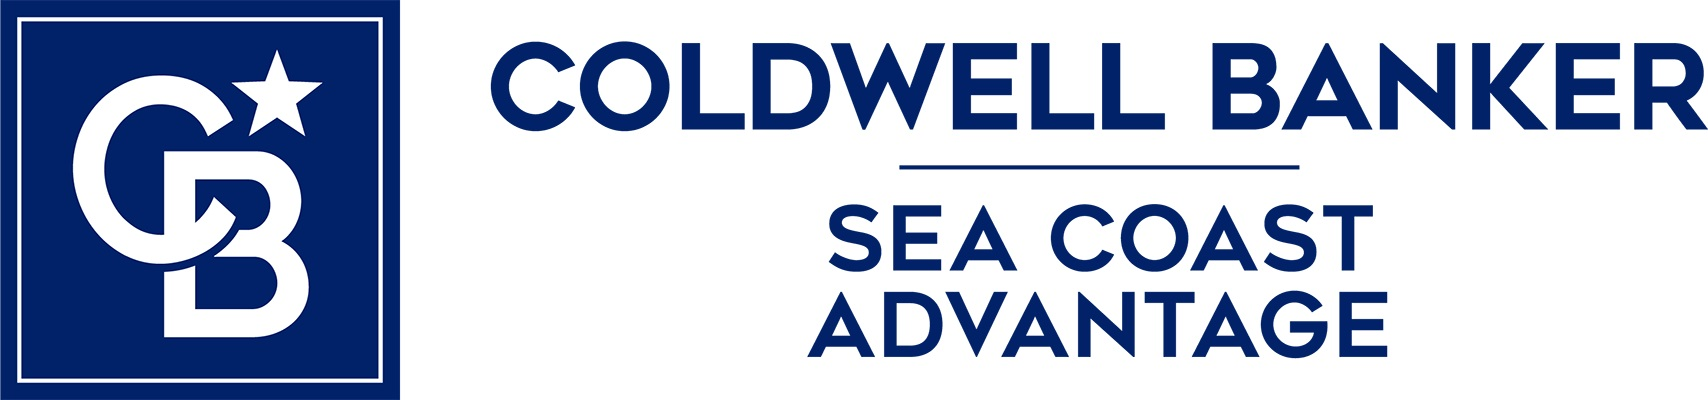 Deanna Moran - Coldwell Banker Sea Coast Advantage Realty Logo